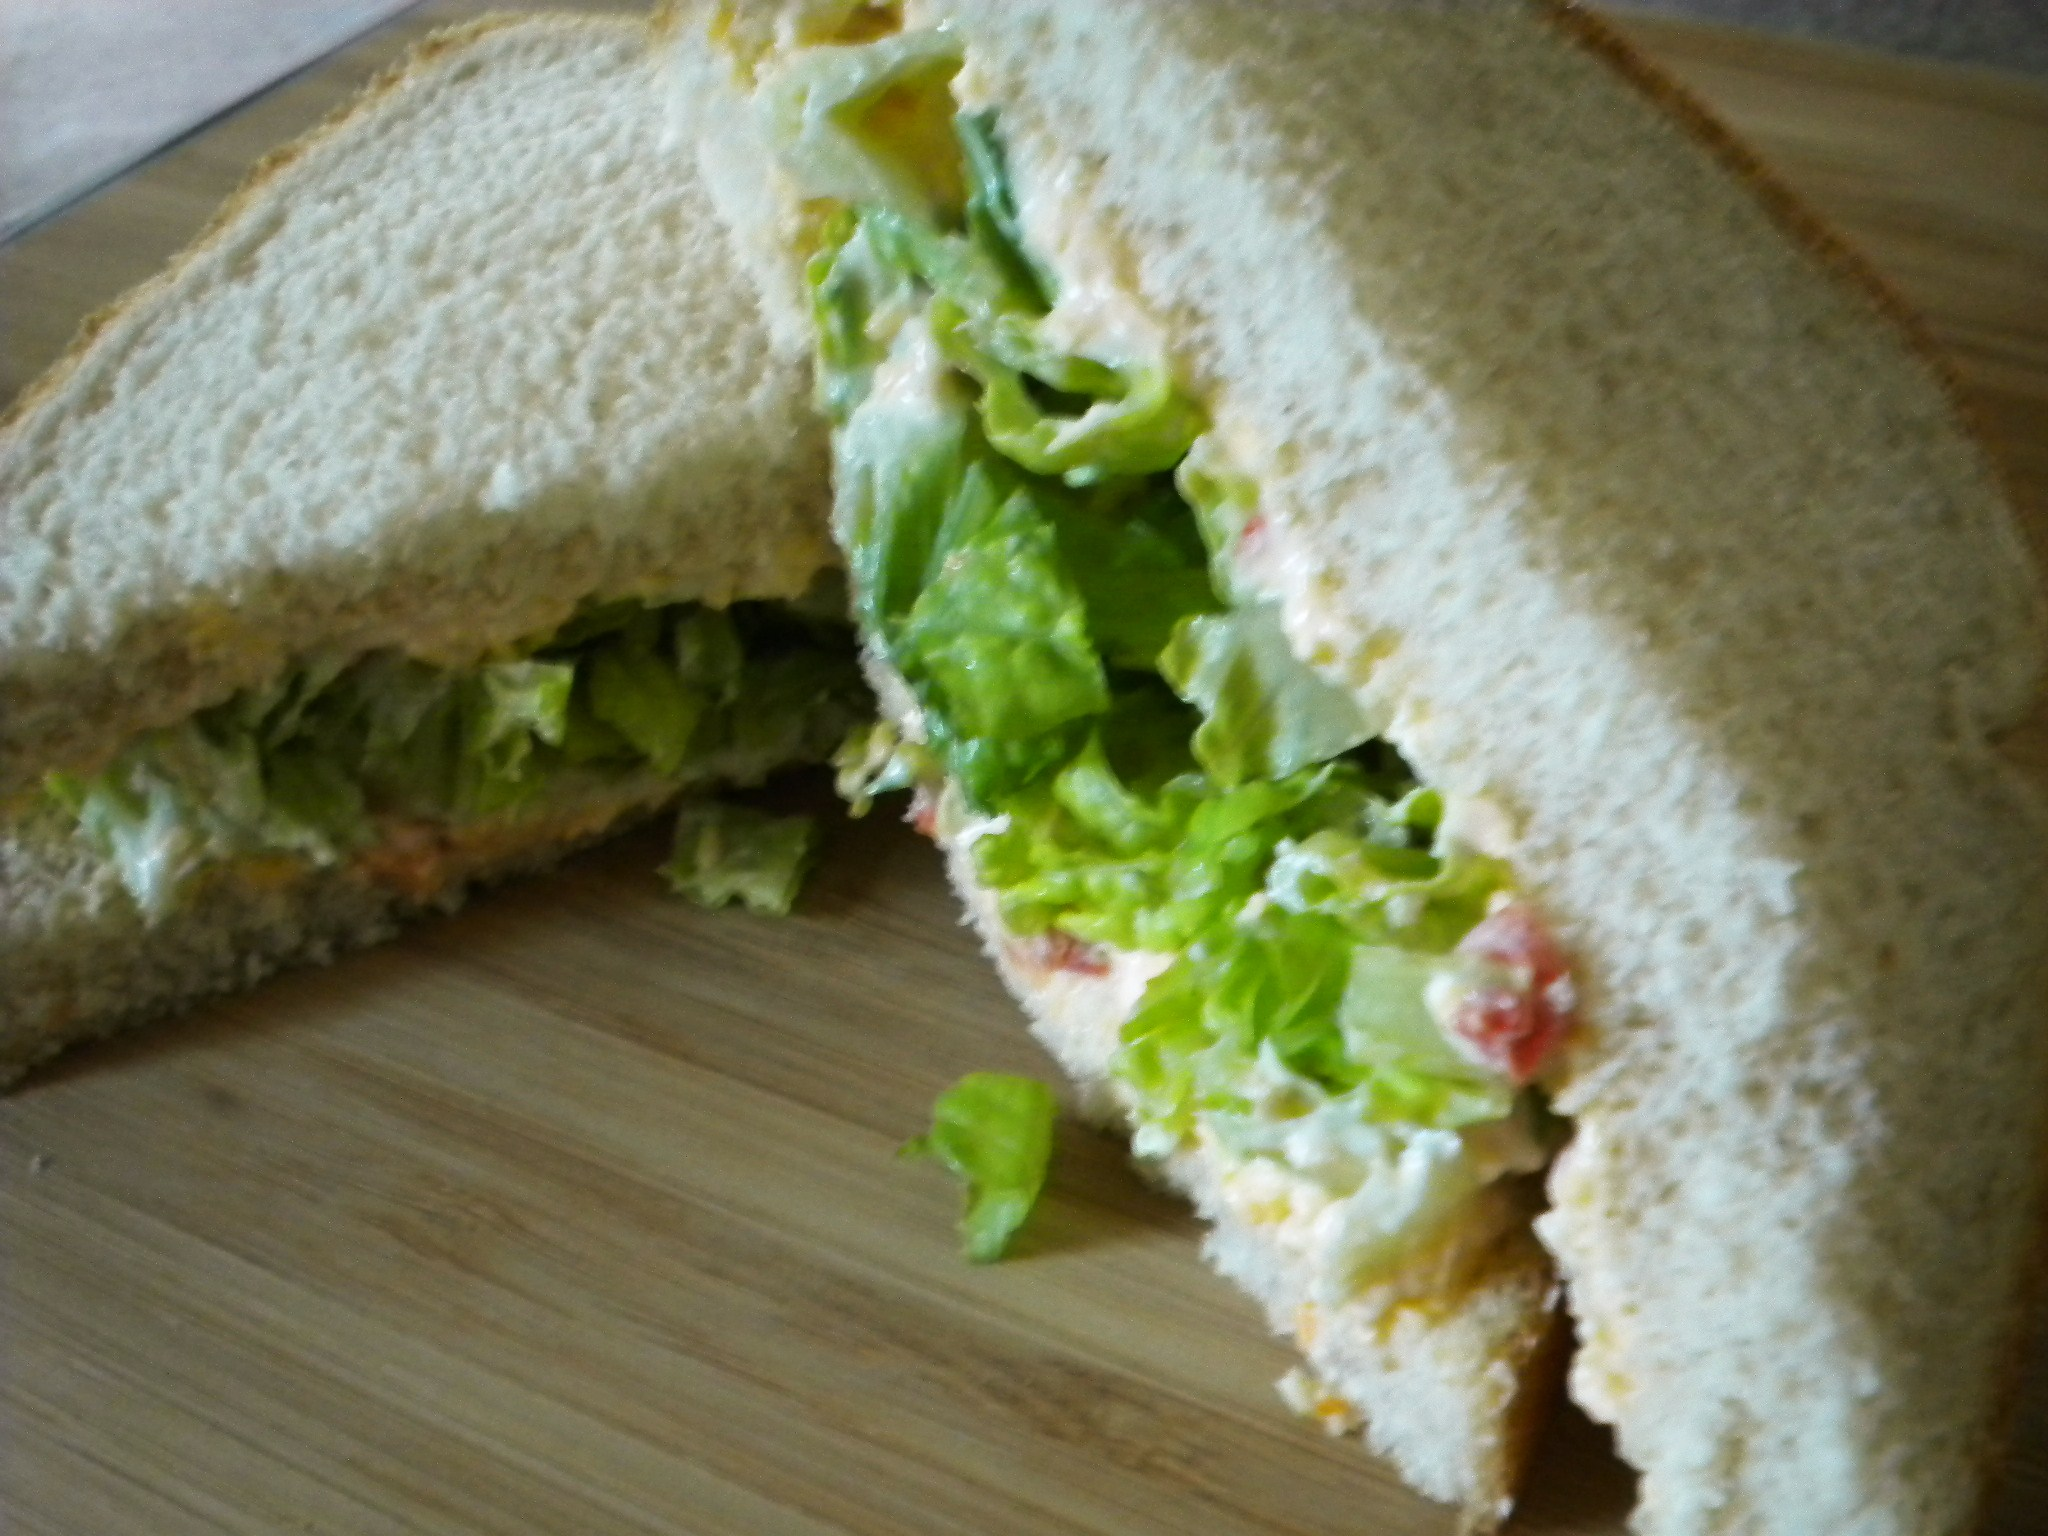 A Dressed Up Lettuce Sandwich